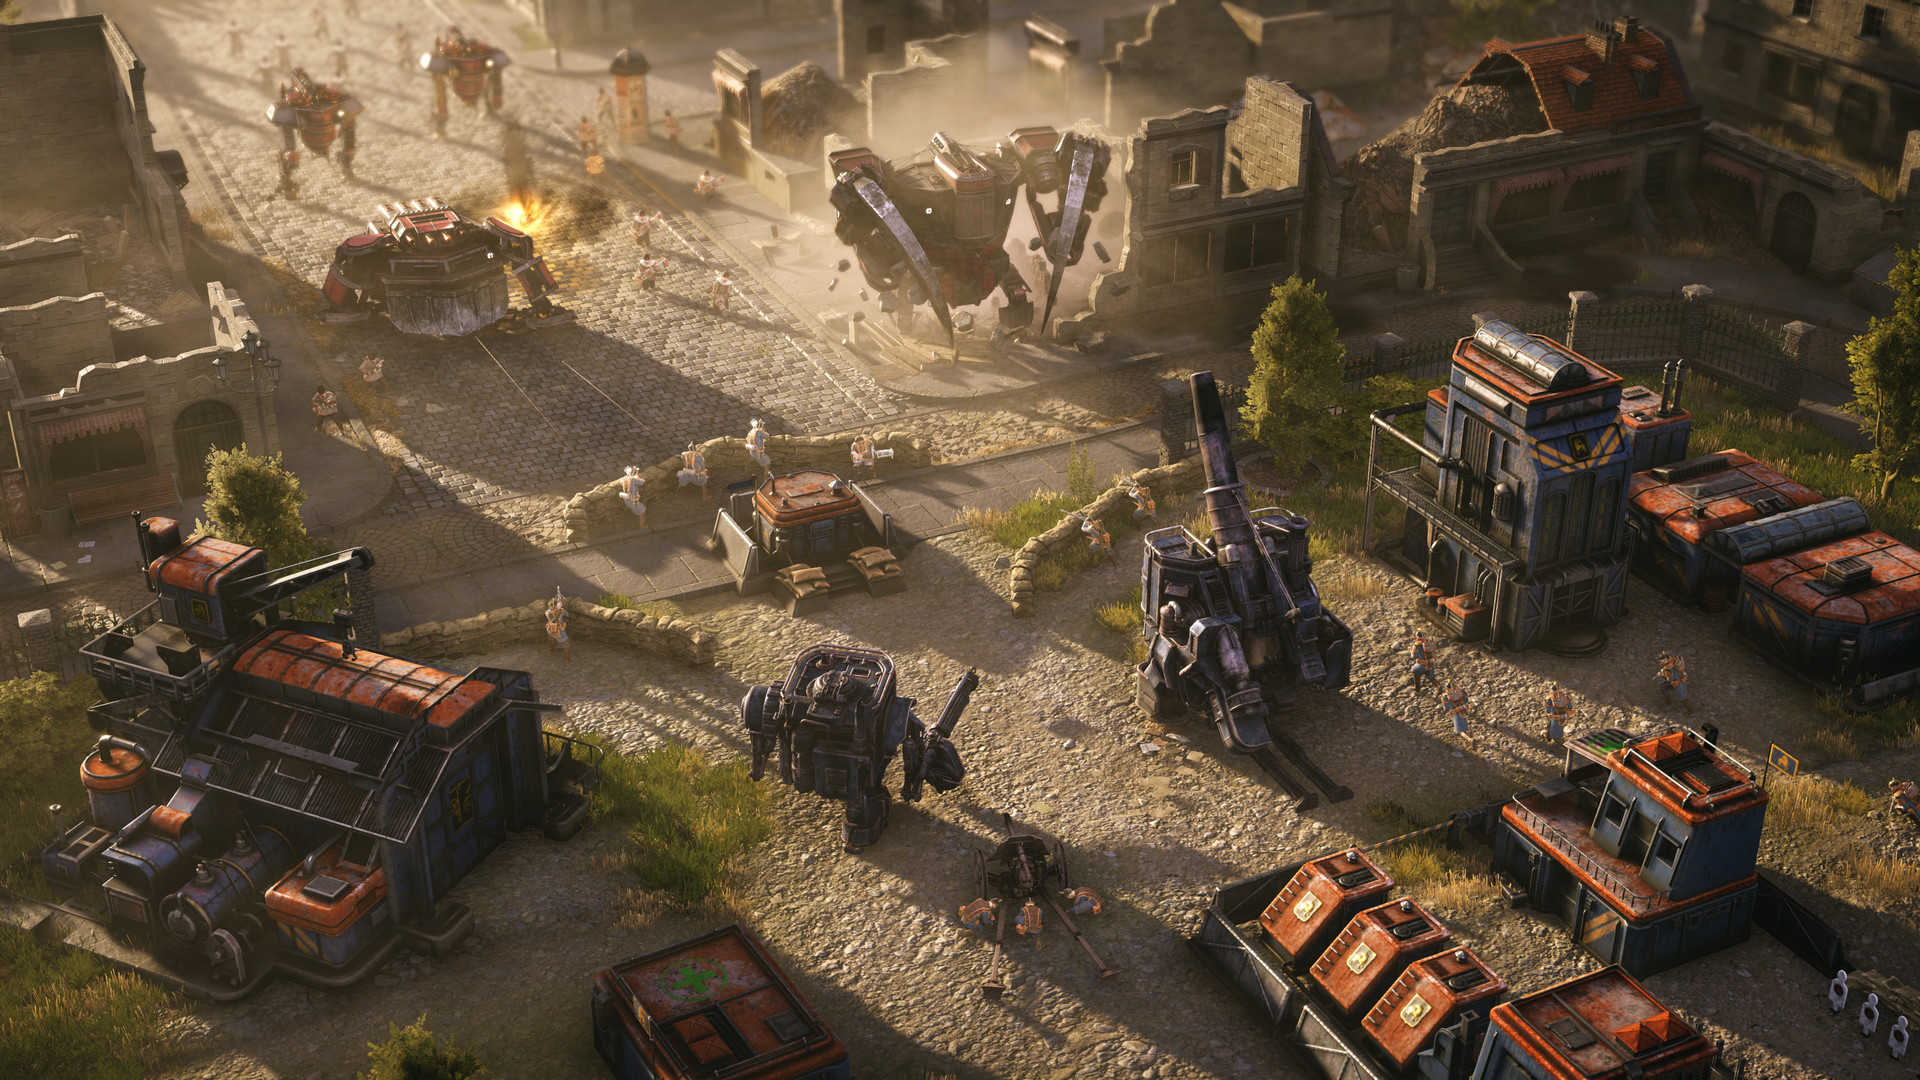 Find the best gaming PC for Iron Harvest